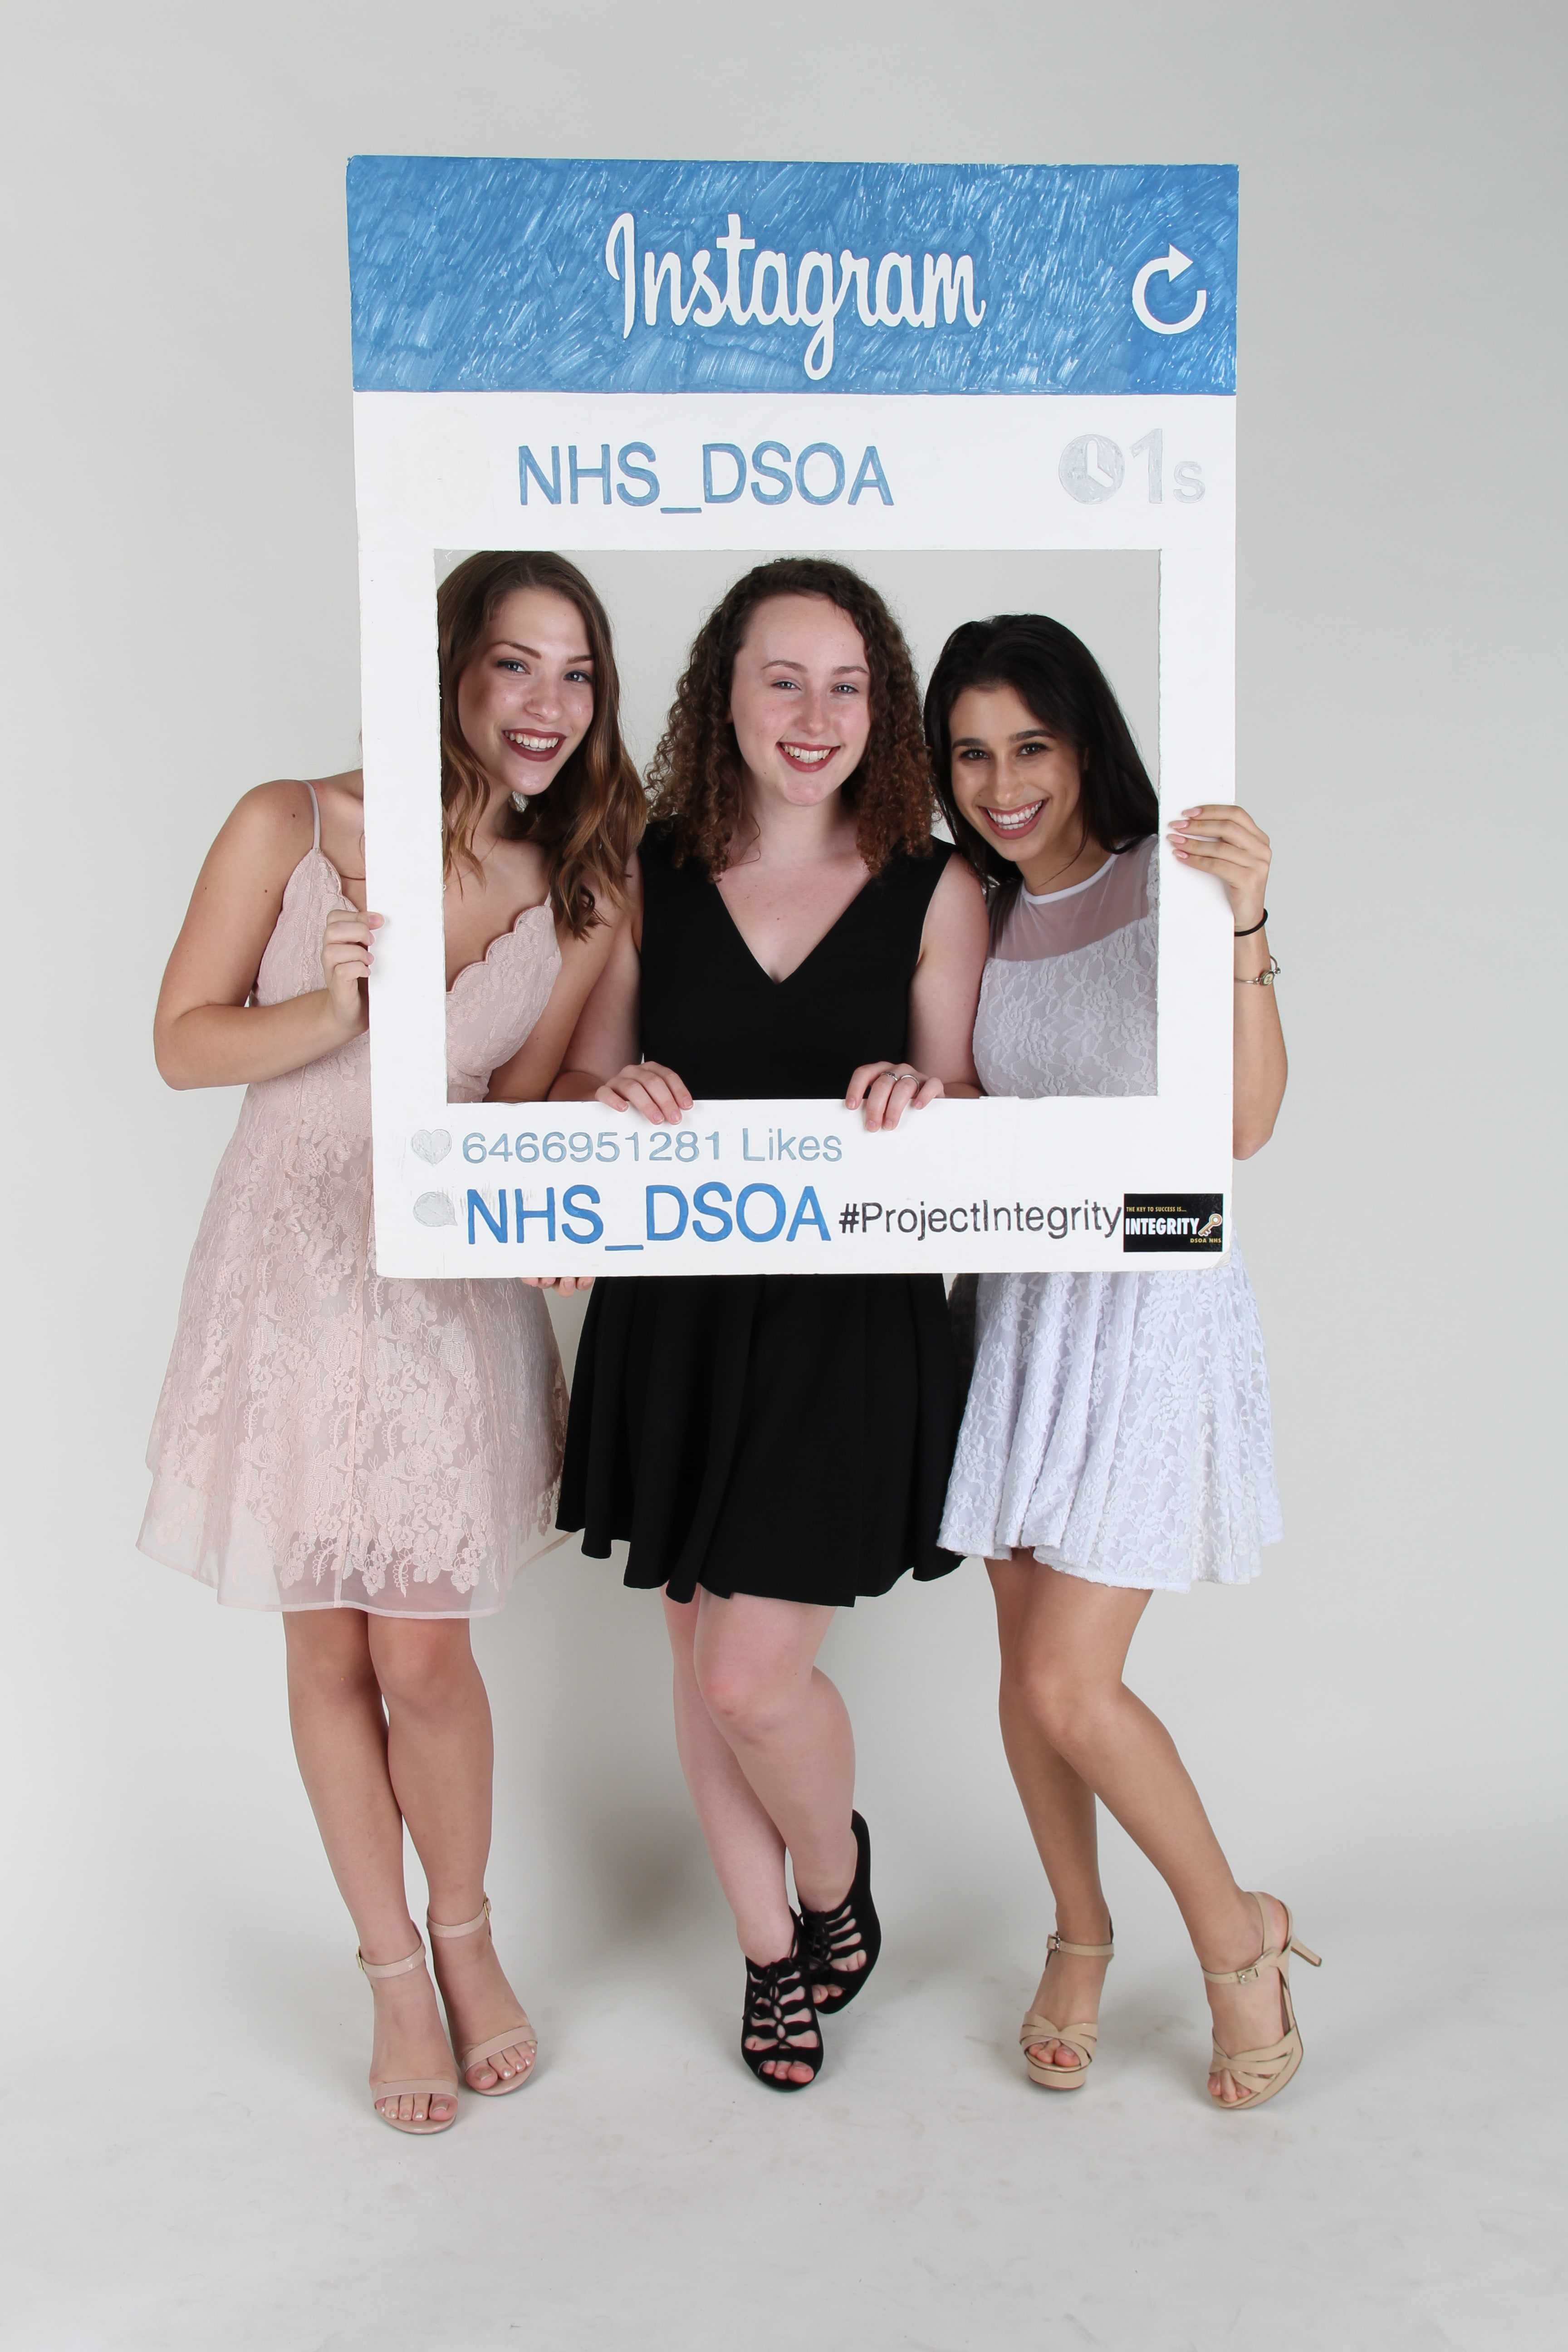 Posing for a photo, theater juniors (L-R) Skyler Sajewski, Aleah Beche, and Zoey Burger celebrate their induction into the National Honor Society on Sept. 30.